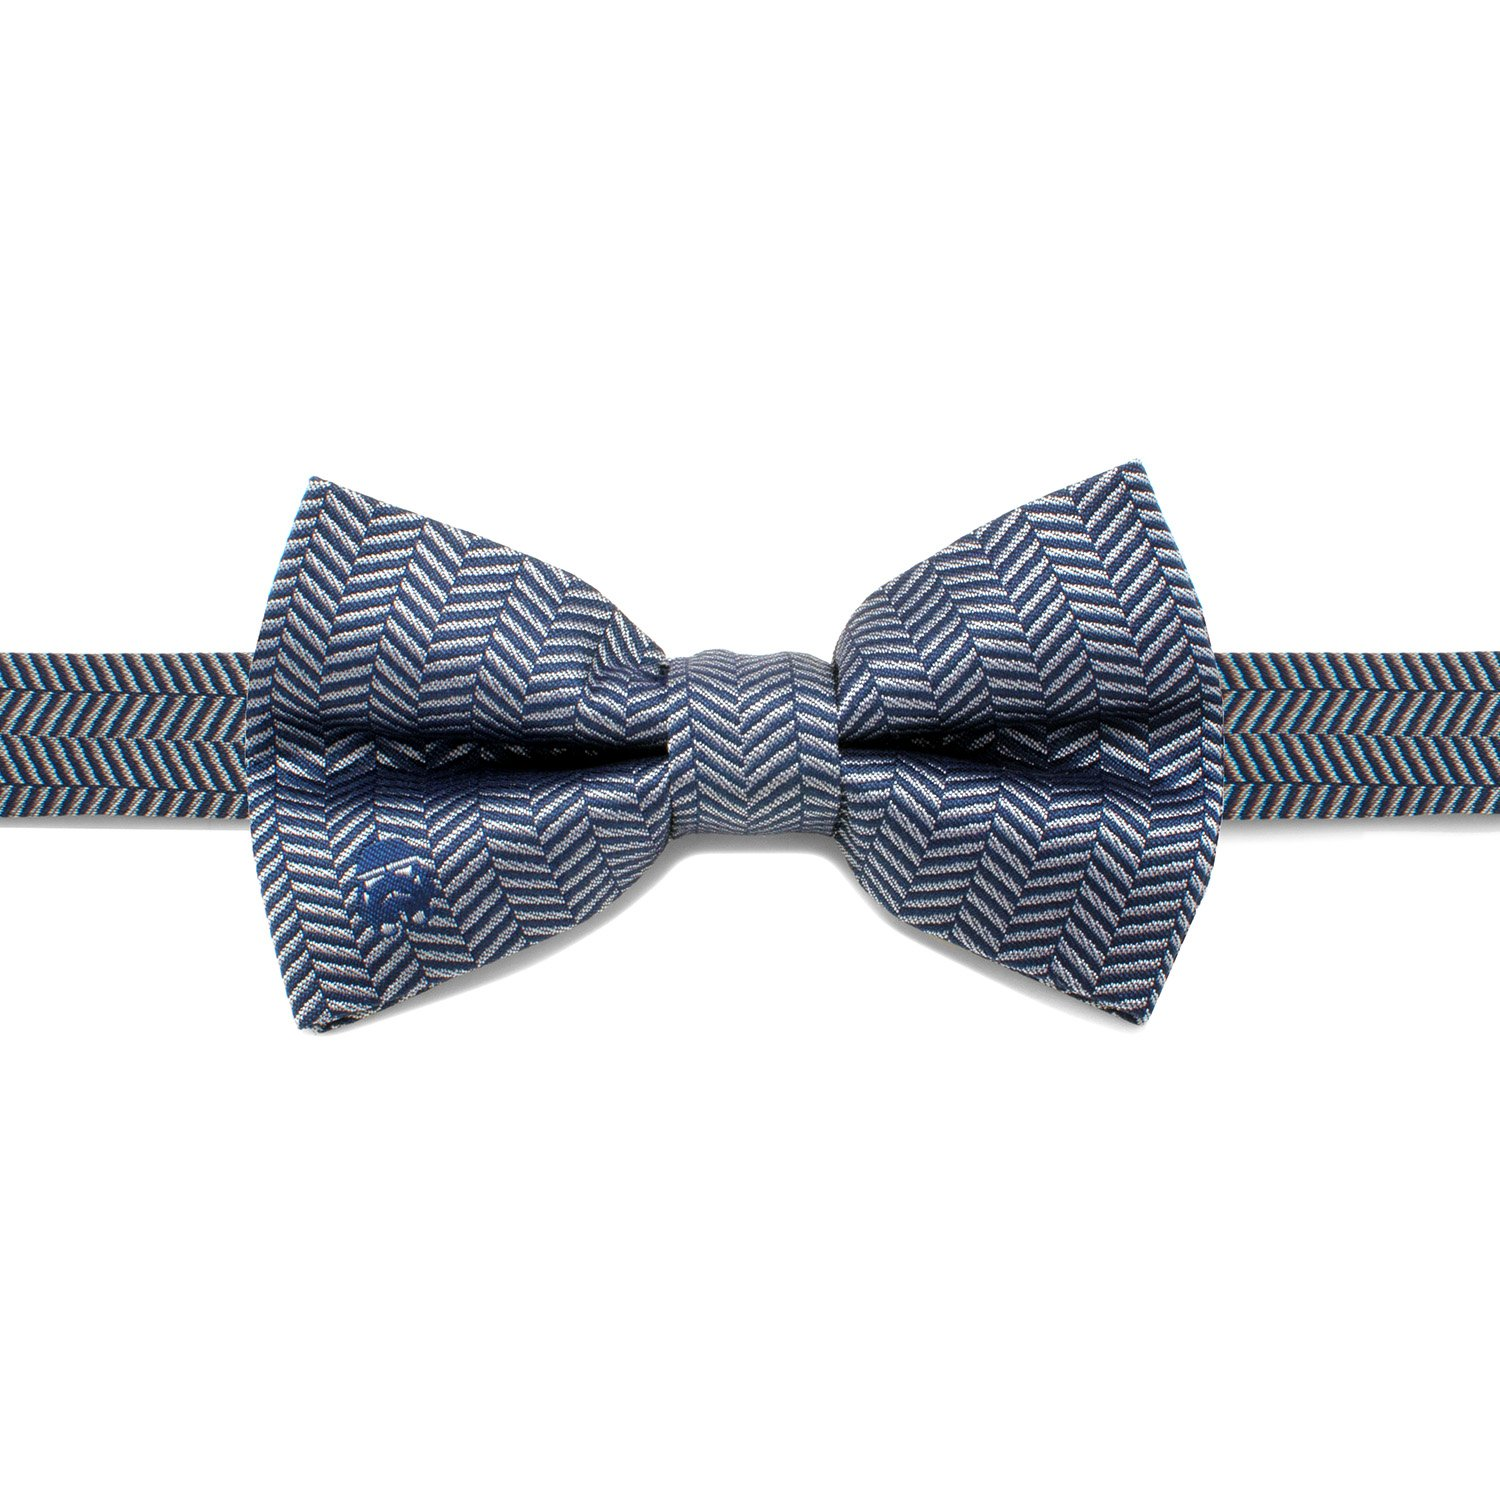 Star Wars Stormtrooper Big Boys' Silk Bow Tie, Officially Licensed SW-STEMB-KBT-BB